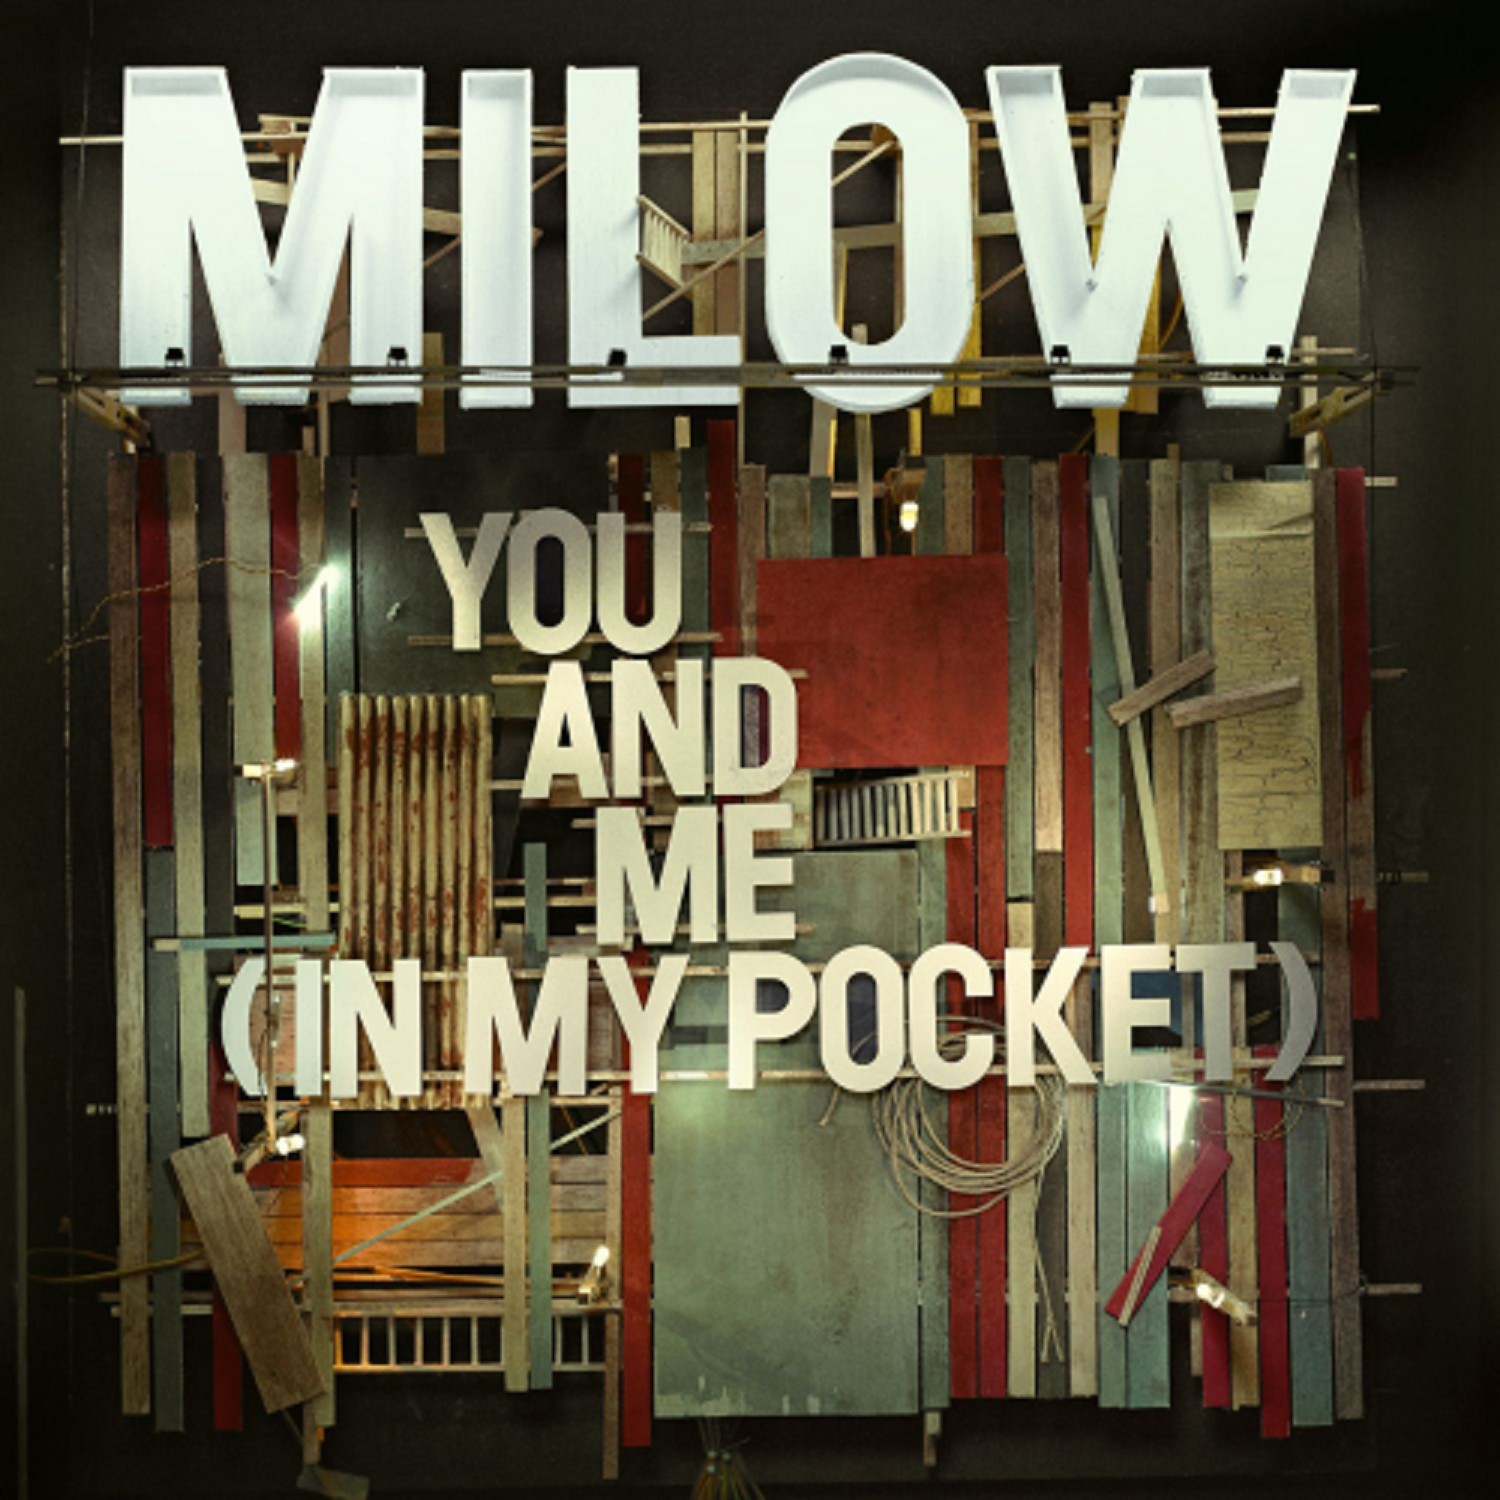 Cover: You and me (in my pocket), Milow